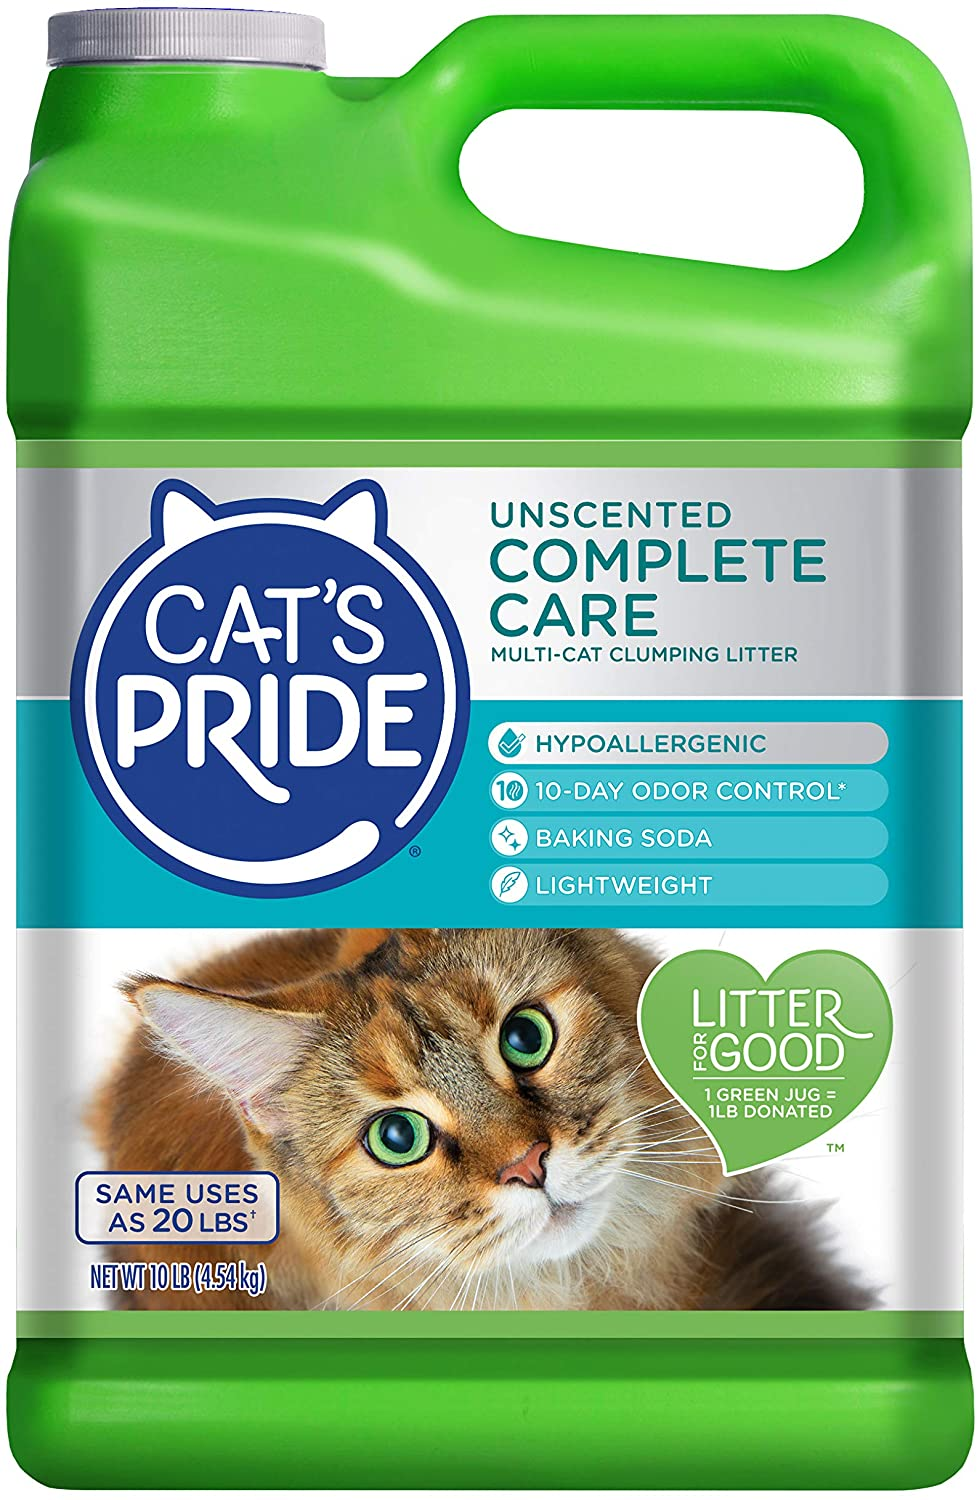 Cat's Pride Unscented Complete care Hypoallergenic Multi-Cat Litter